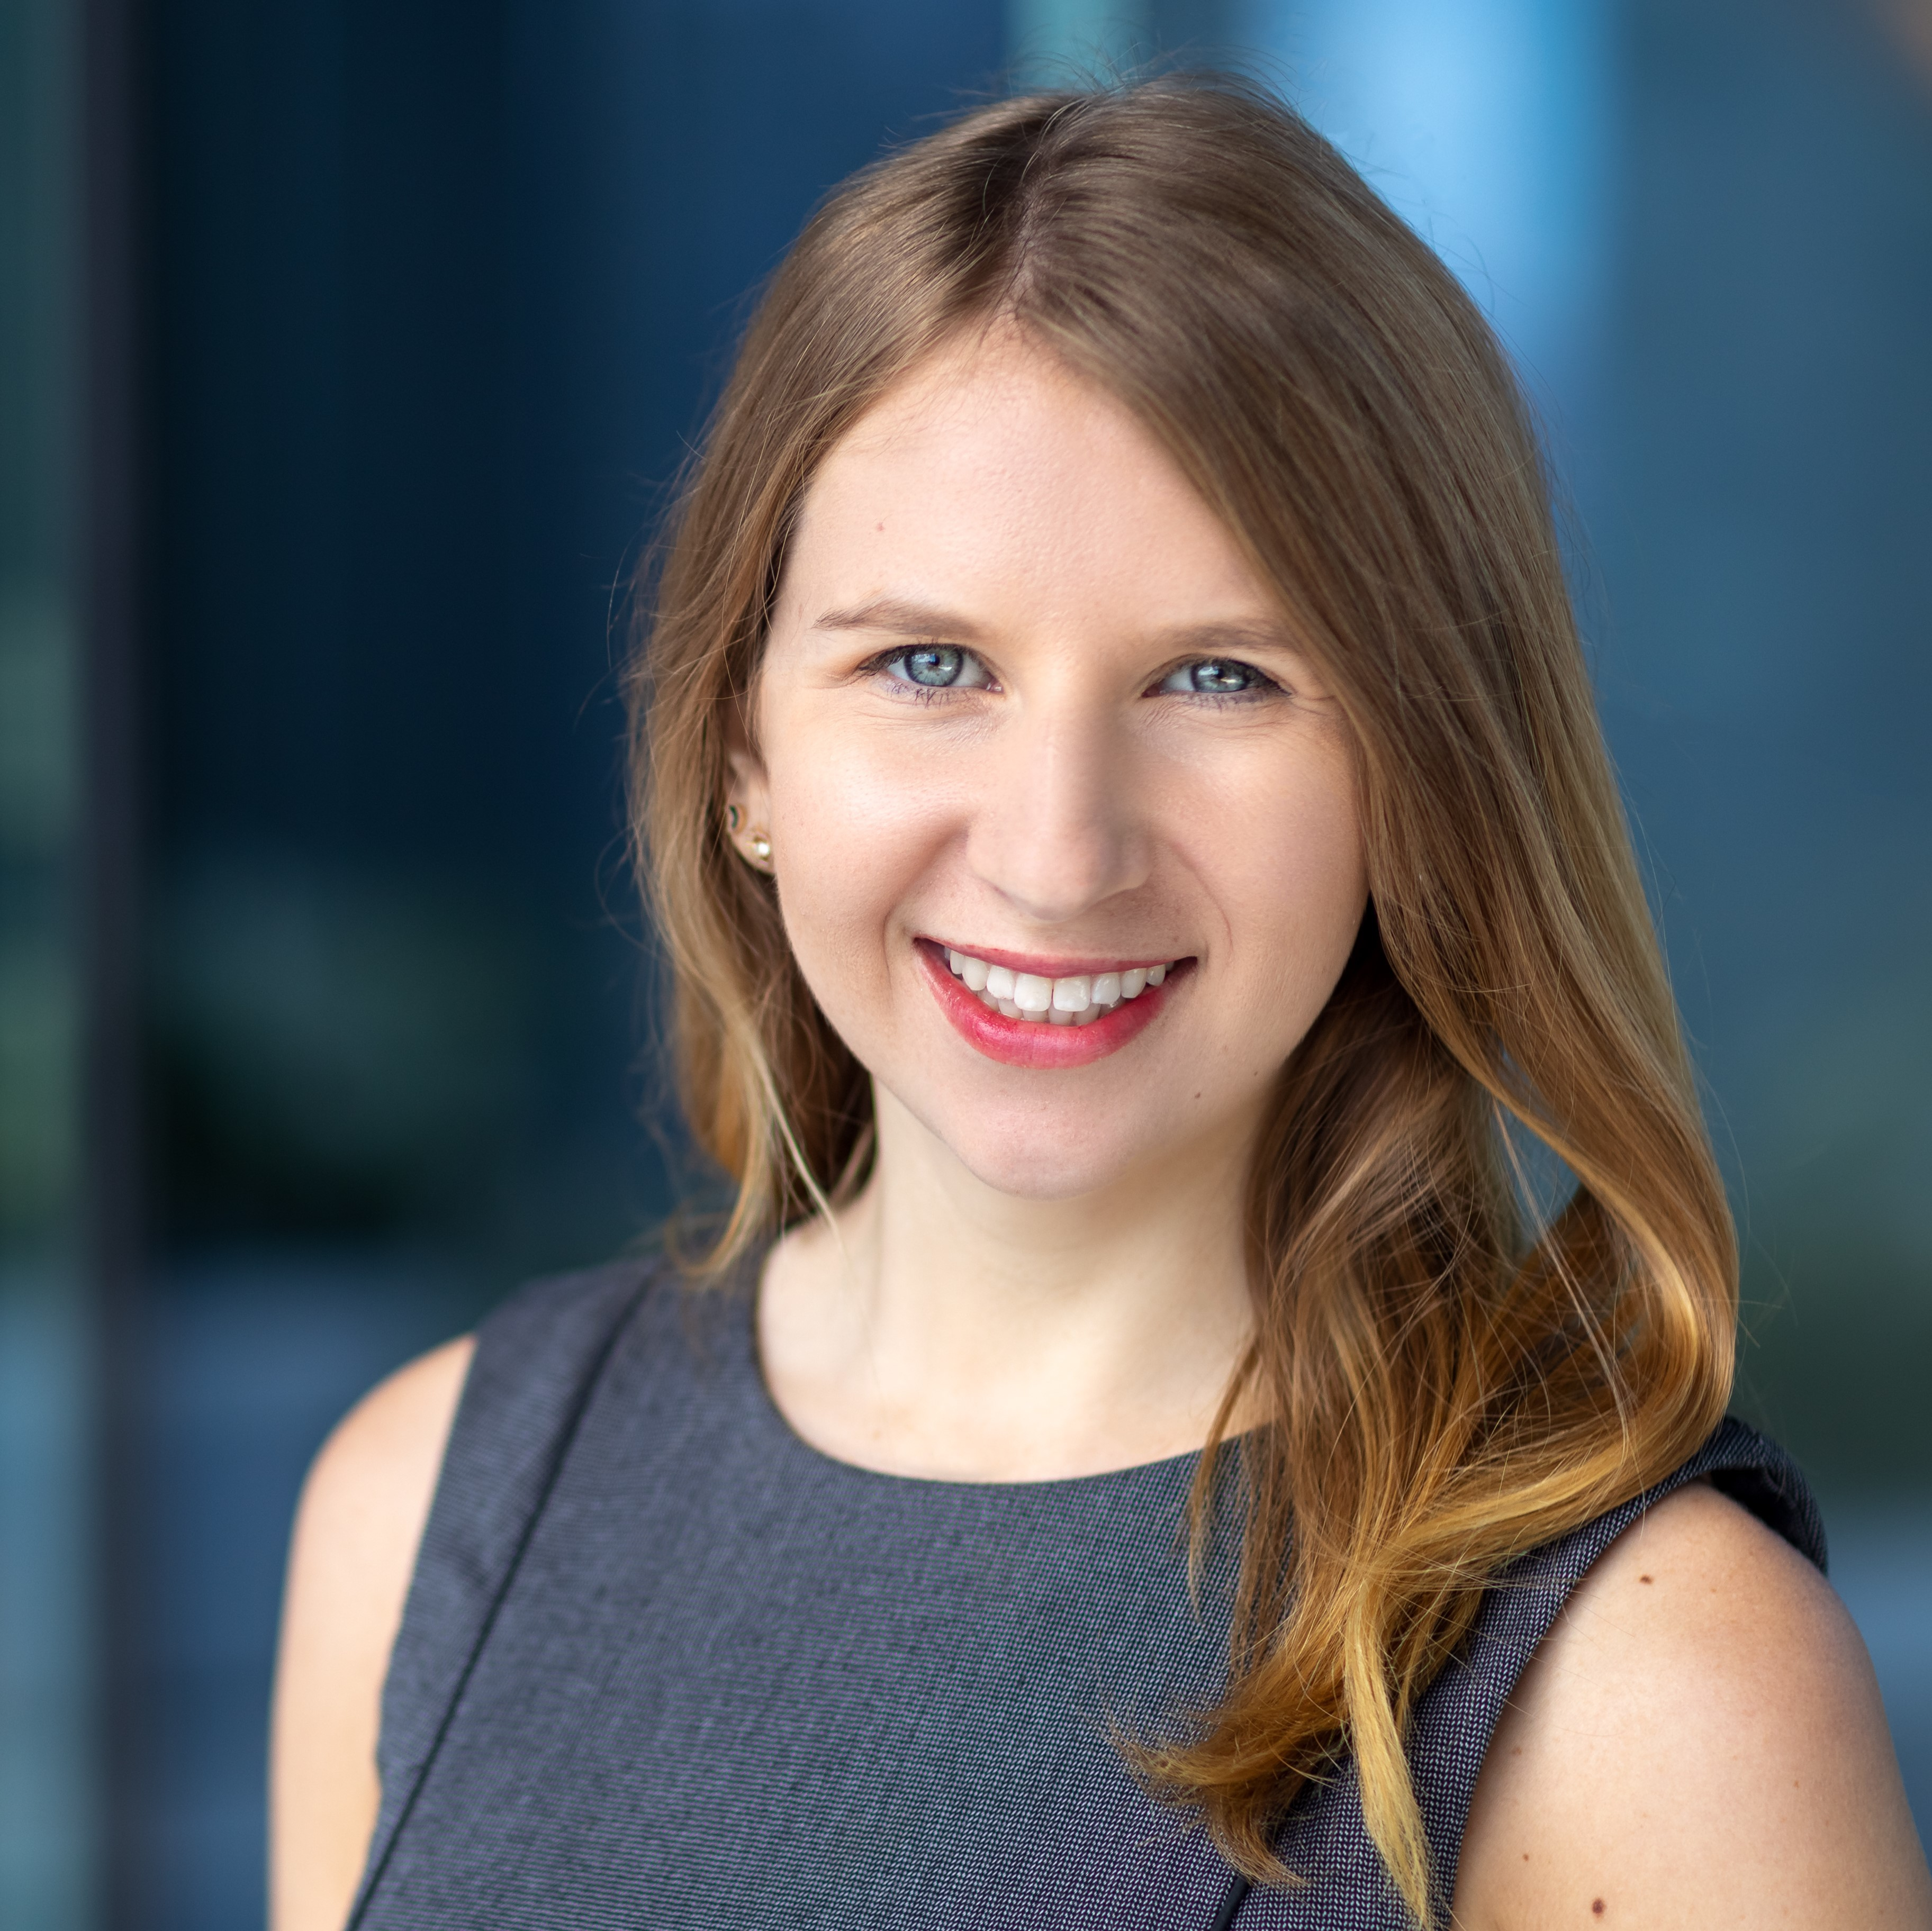 Victoria Jones Yilmaz is an associate in the New York office of Milbank LLP and a member of the firm's Alternative Investments Practice